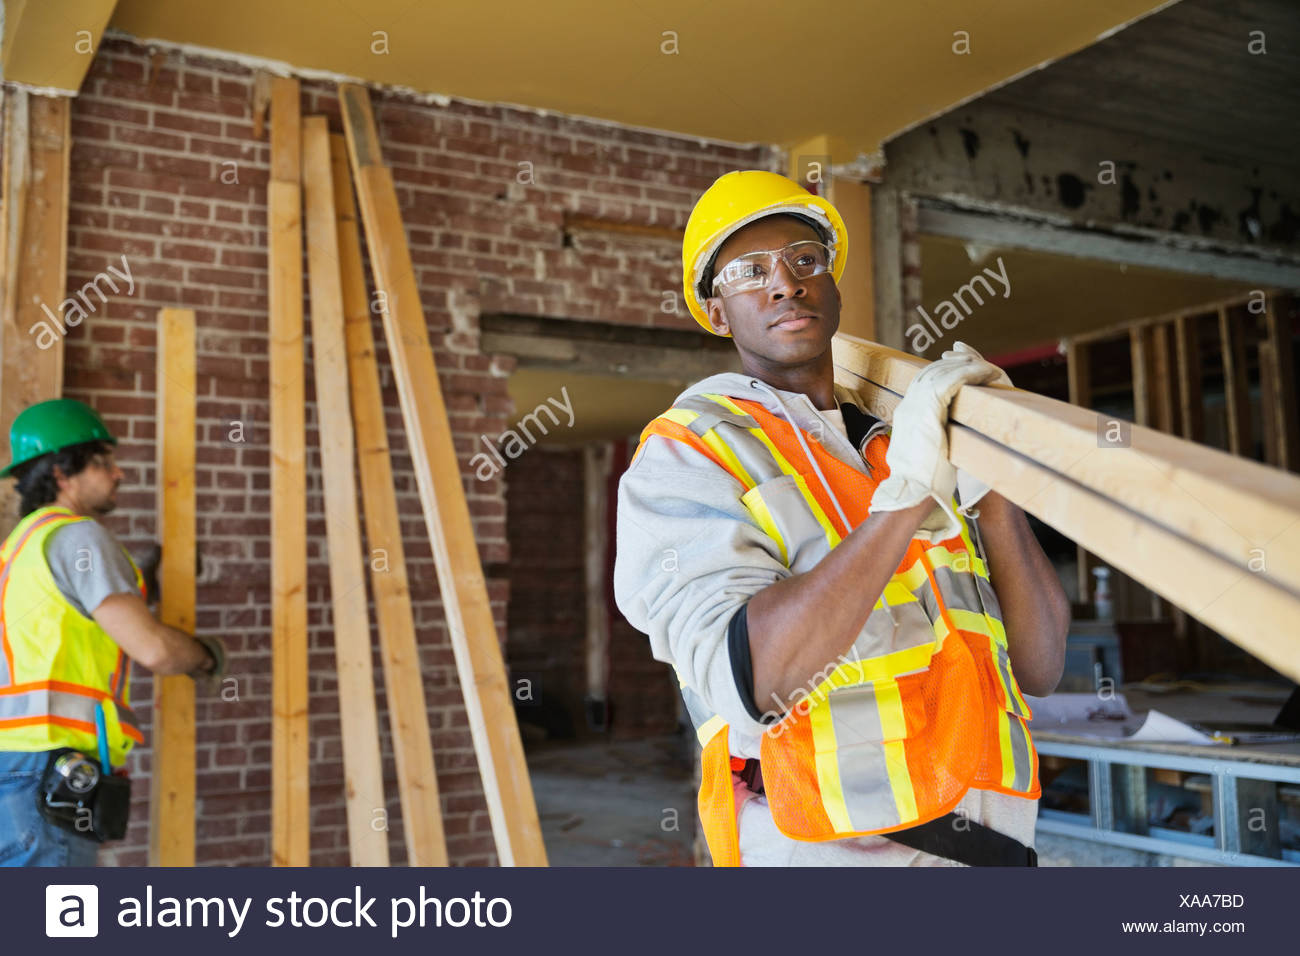 Tradesmen carrying lumber at construction site - Stock Image